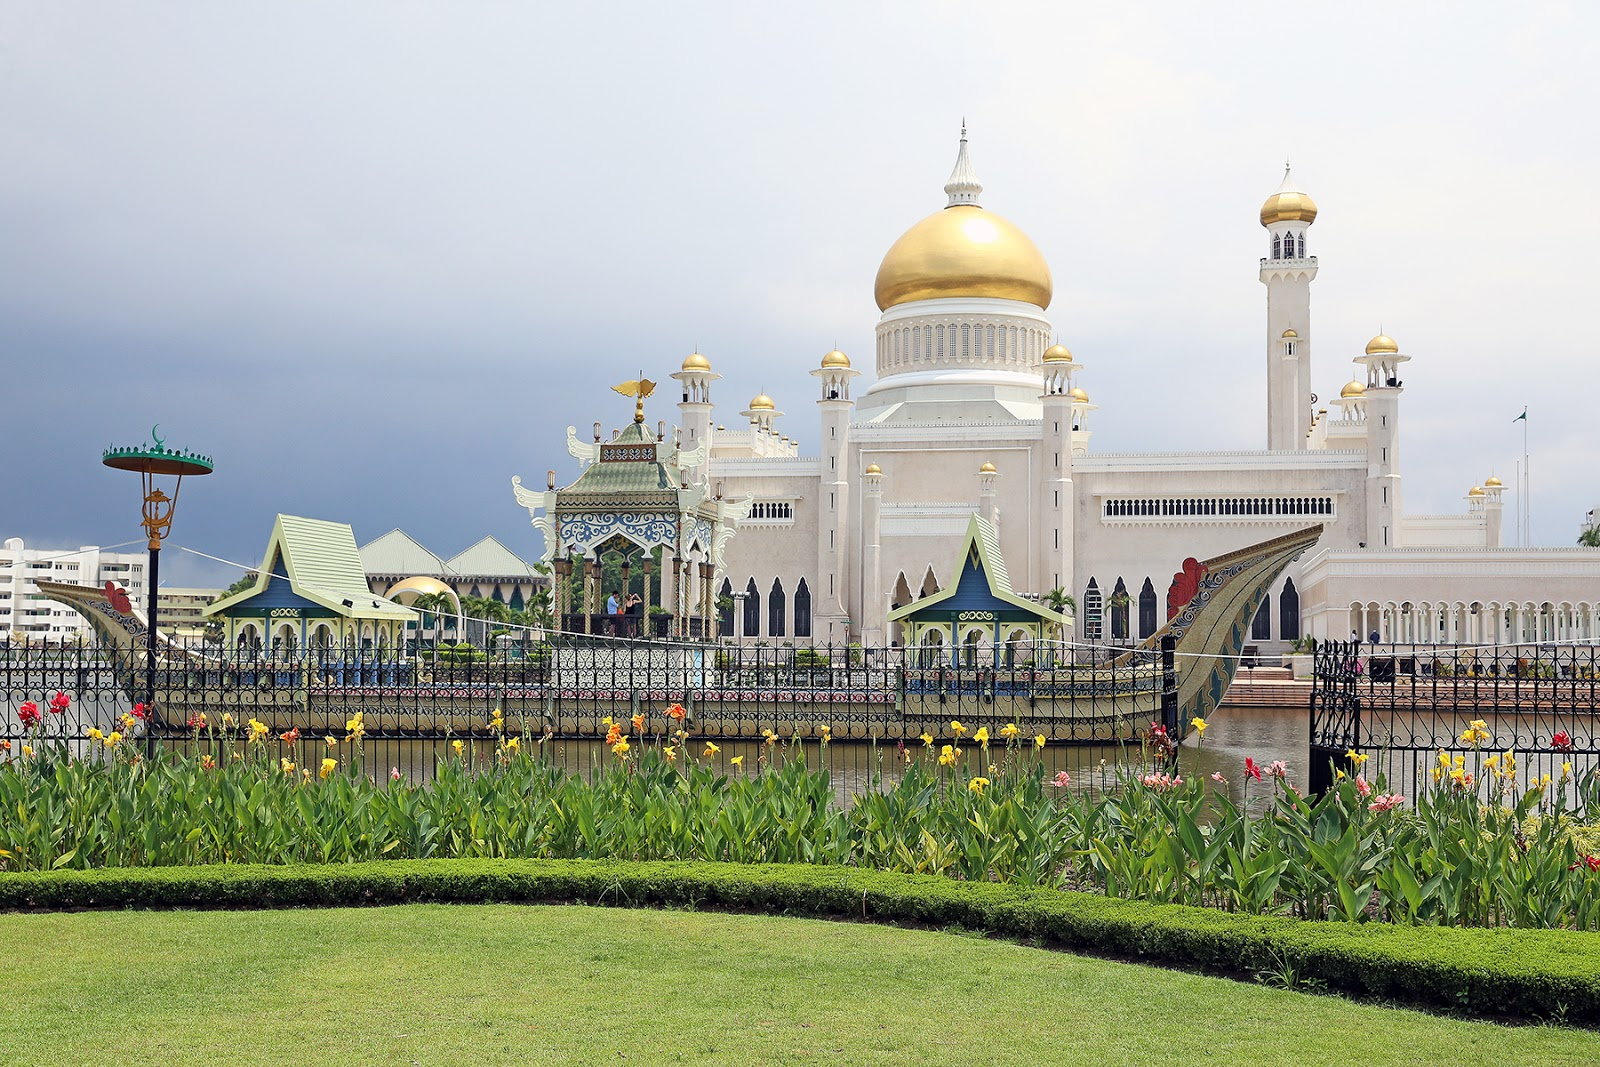 Bandar Seri Begawan, Brunei Darussalam: A Day Trip in the